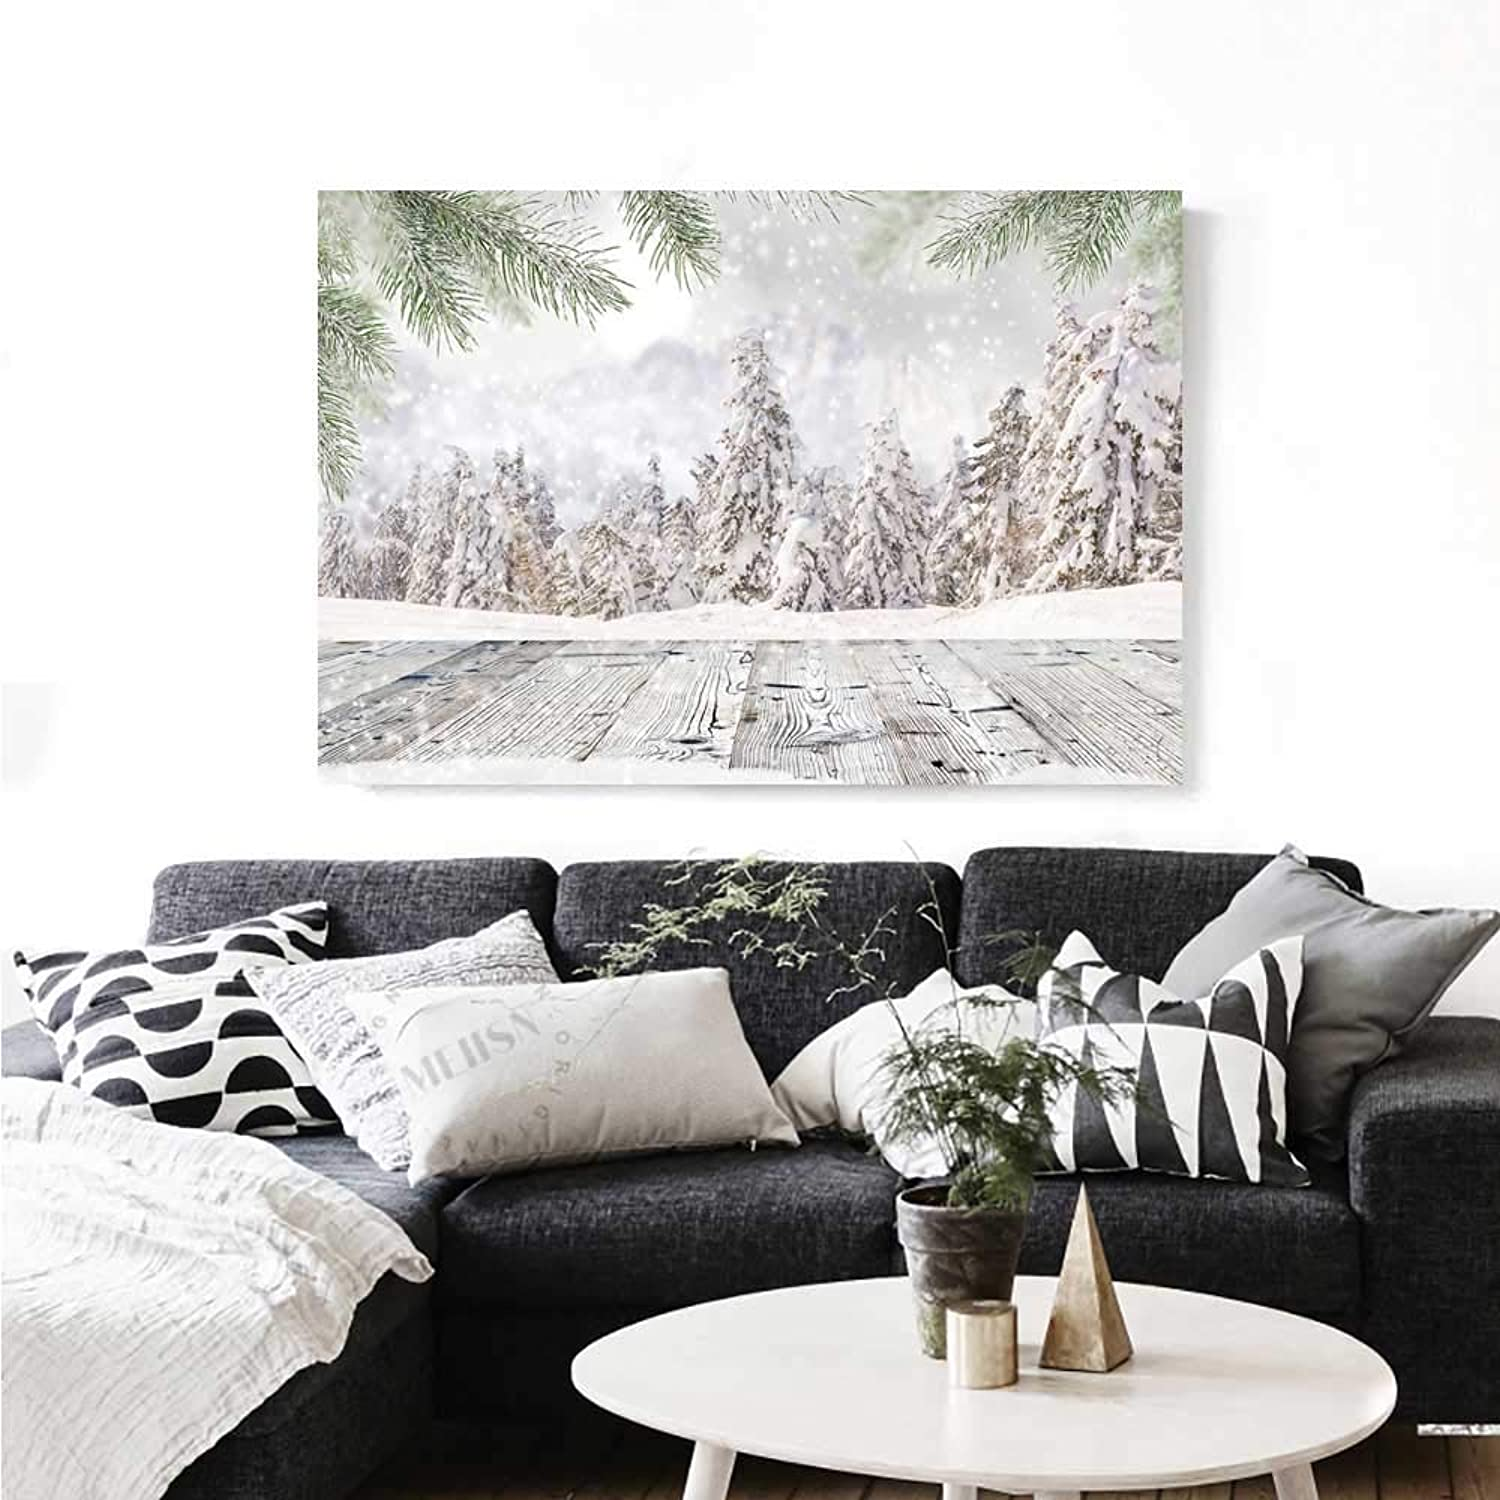 Warm Family Winter Canvas Wall Art Abstract Christmas Themed Image with Snow Covered Forest and Wooden Surface Photo Artwork for Wall Decor 36 x32